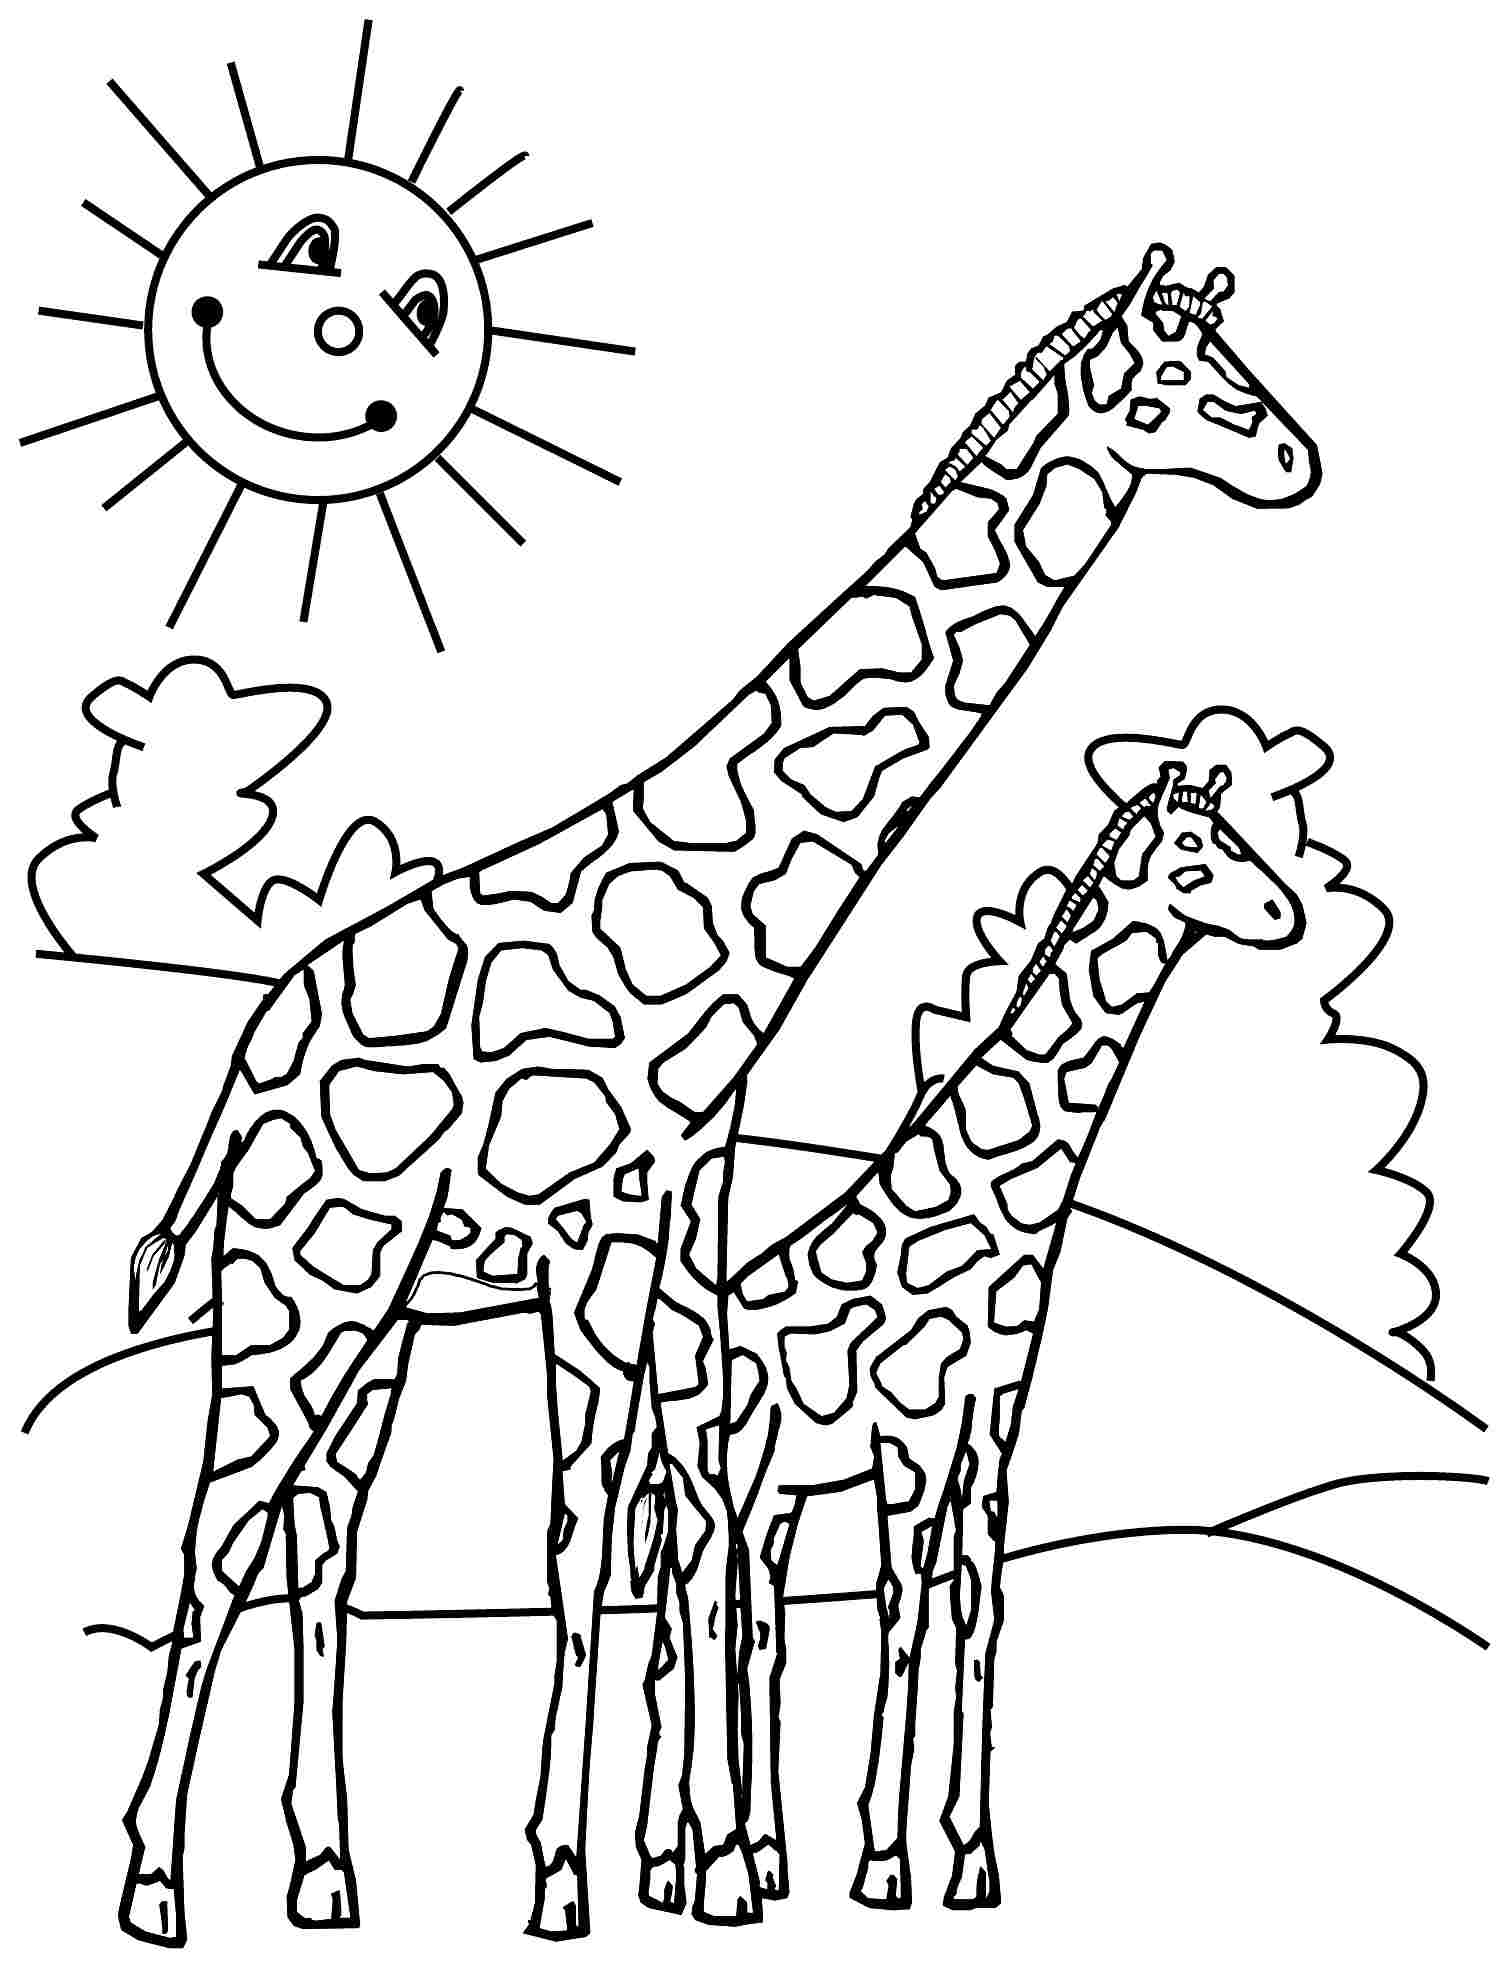 printable pictures to color zebra coloring pages free printable kids coloring pages to printable pictures color